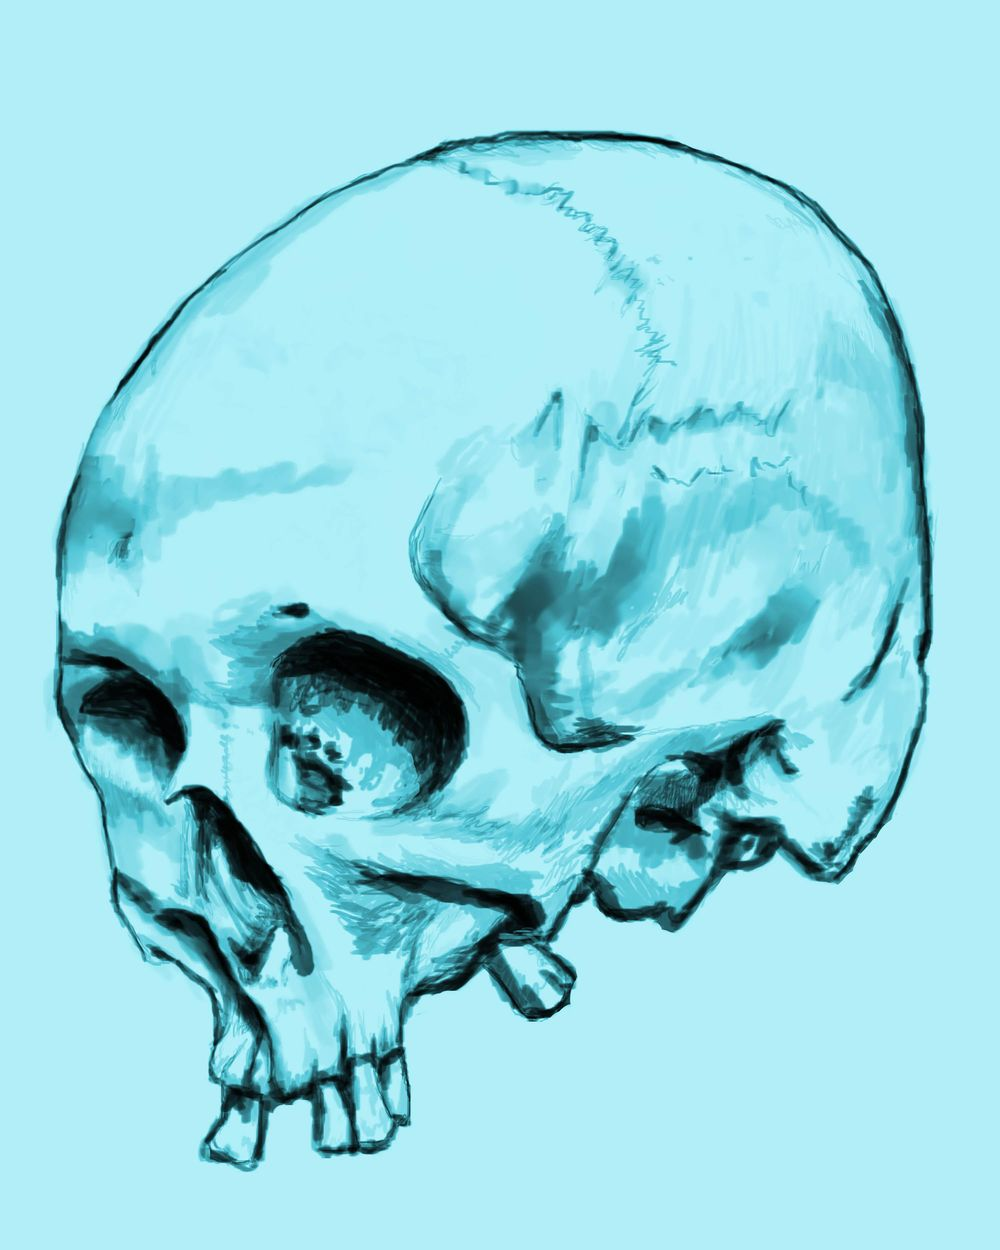 Skullchedelic - image 1 - student project